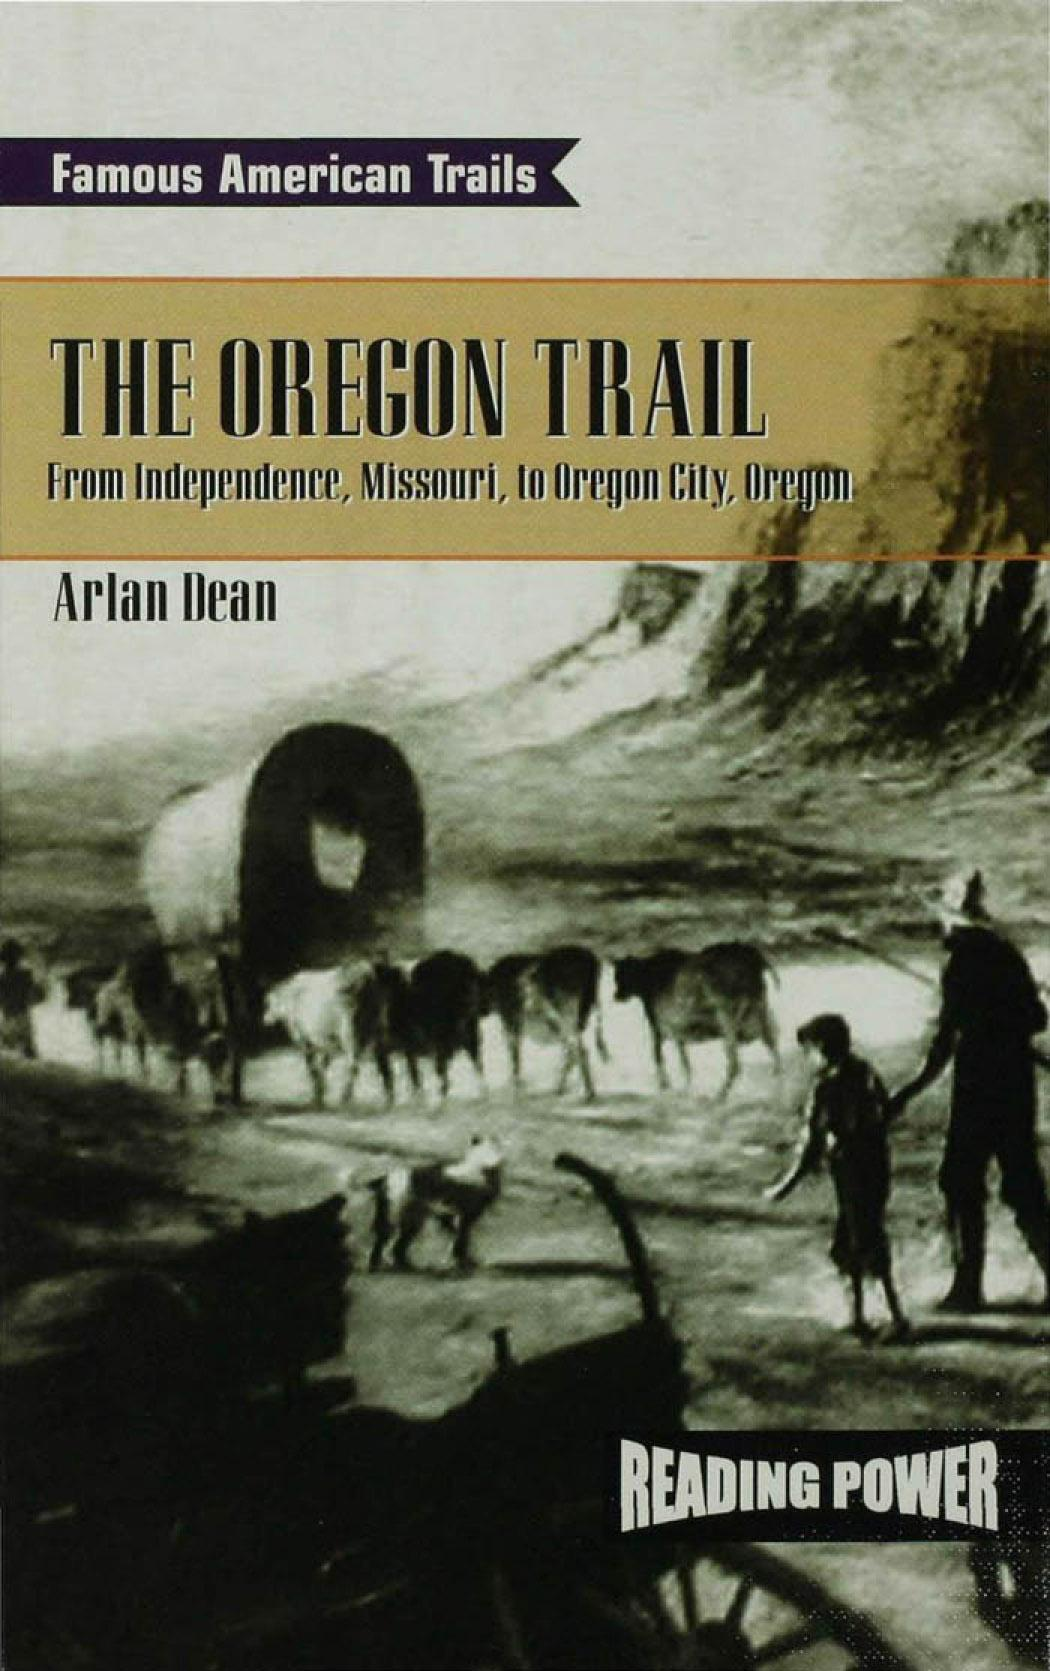 The Oregon Trail: From Independence, Missouri to Oregon City, Oregon